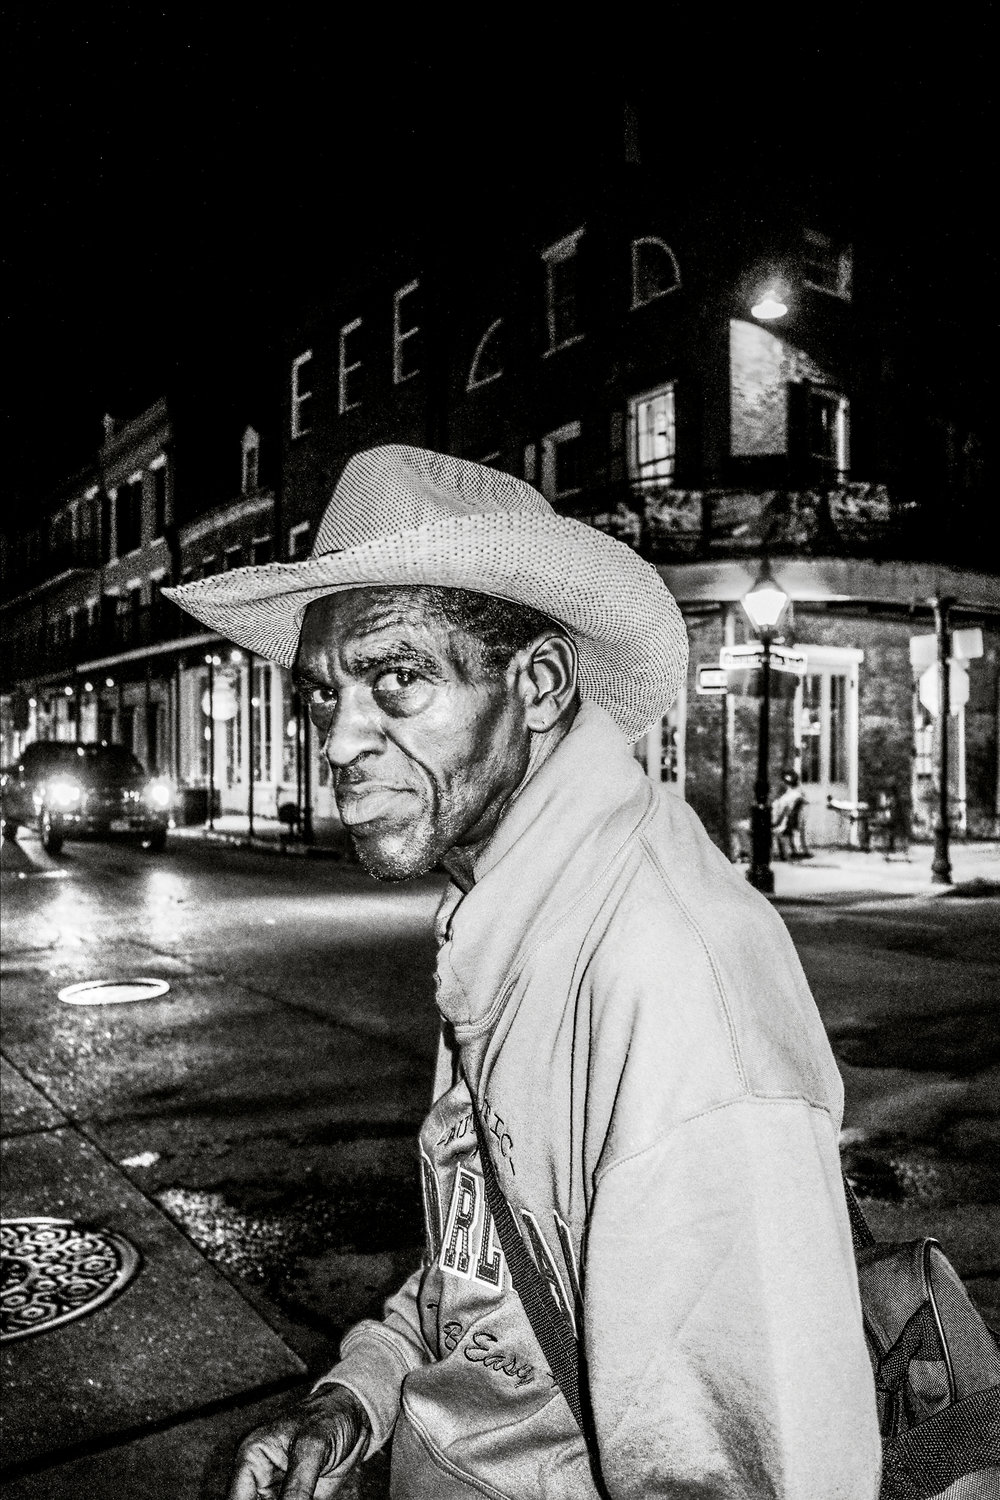 meg_hewitt_Decatur_Street_New_Orleans.jpg